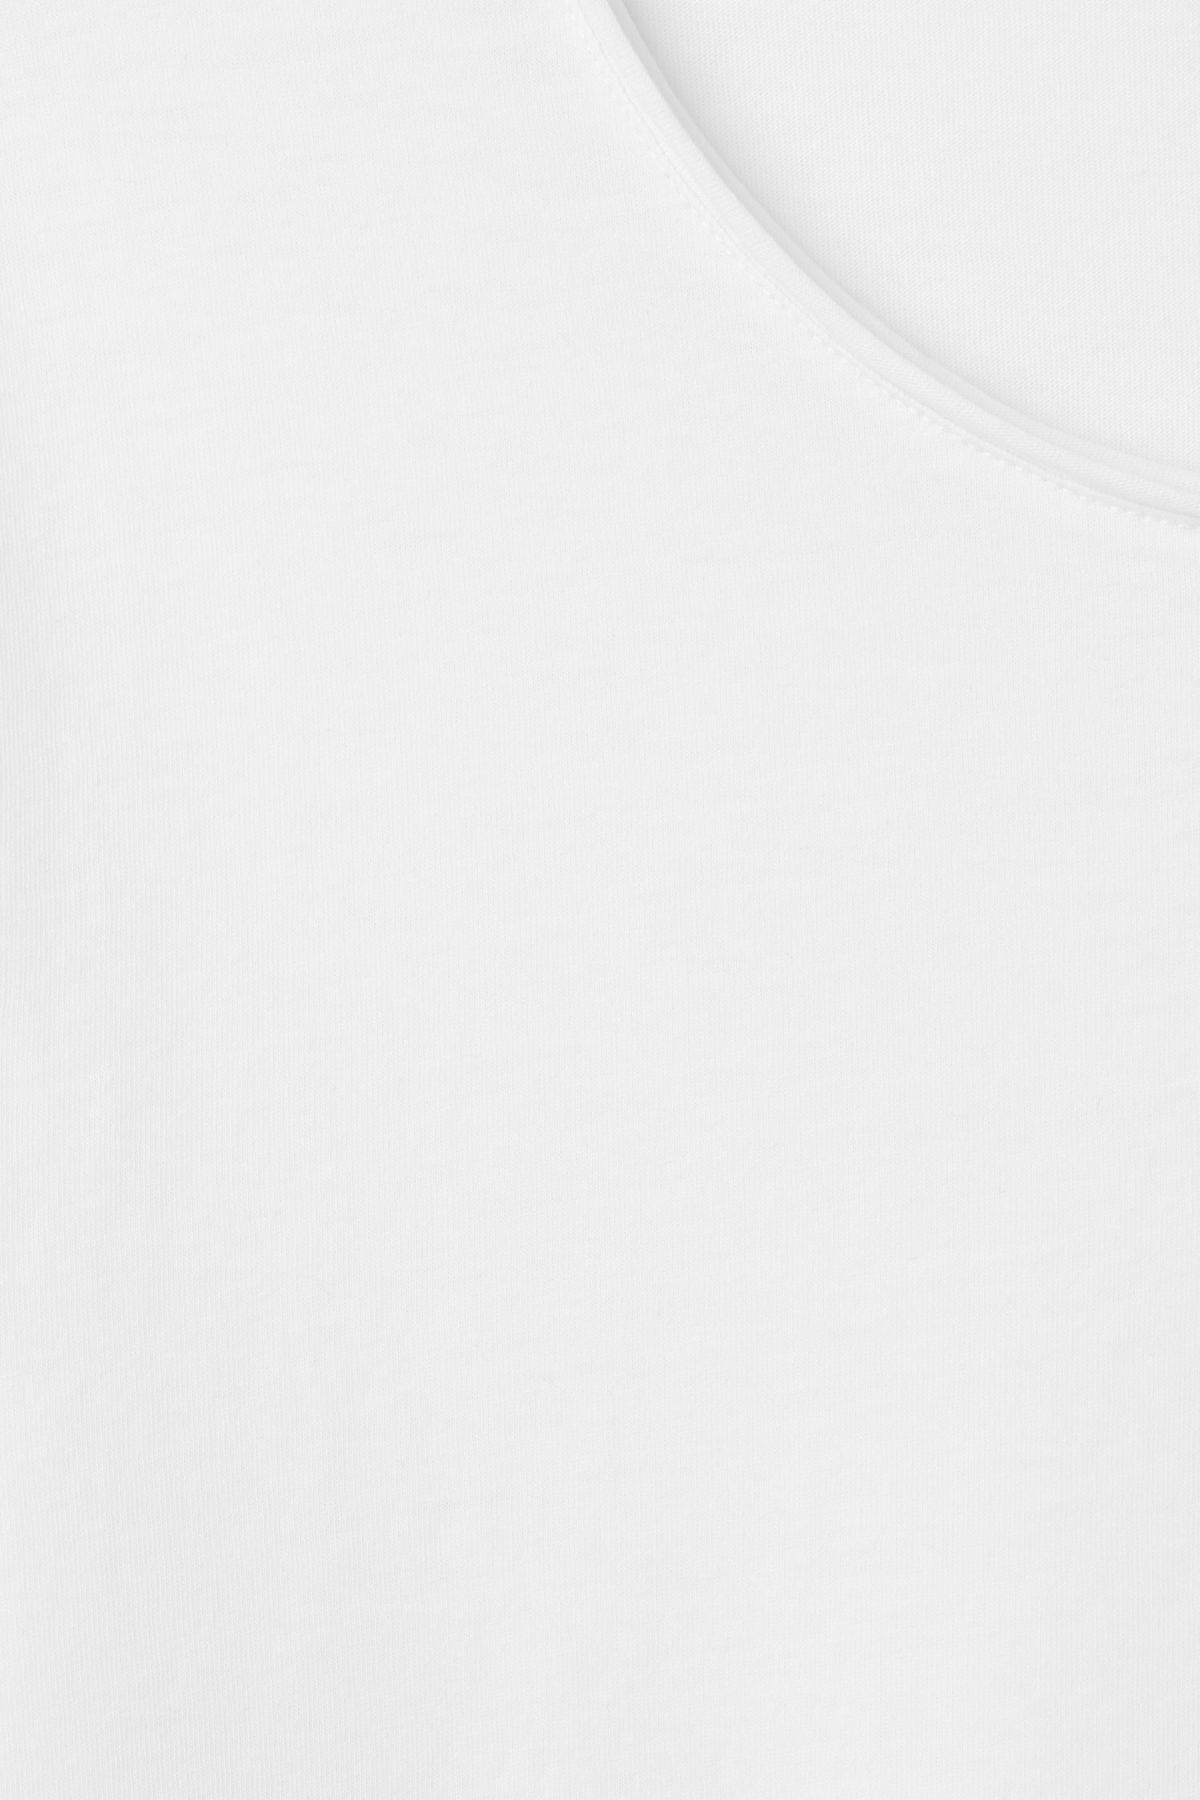 Detailed image of Weekday dark t-shirt in white